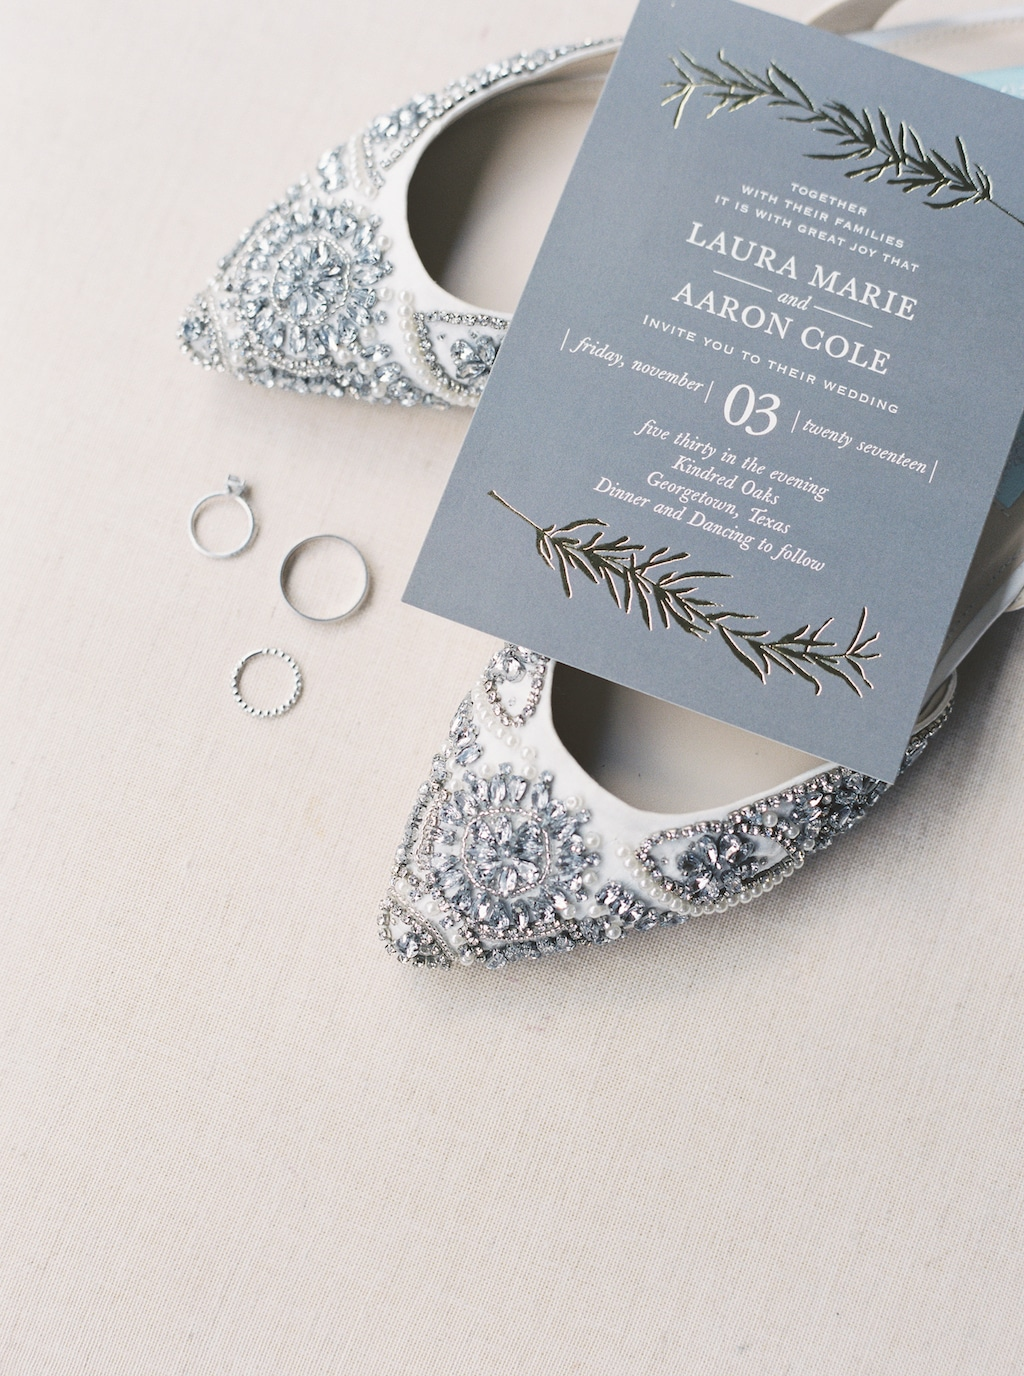 An invitation to a wedding at Kindred Oaks in Georgetown, Texas, rests on top of a pair of glamorous bridal shoes, next to the bride and groom's wedding rings.